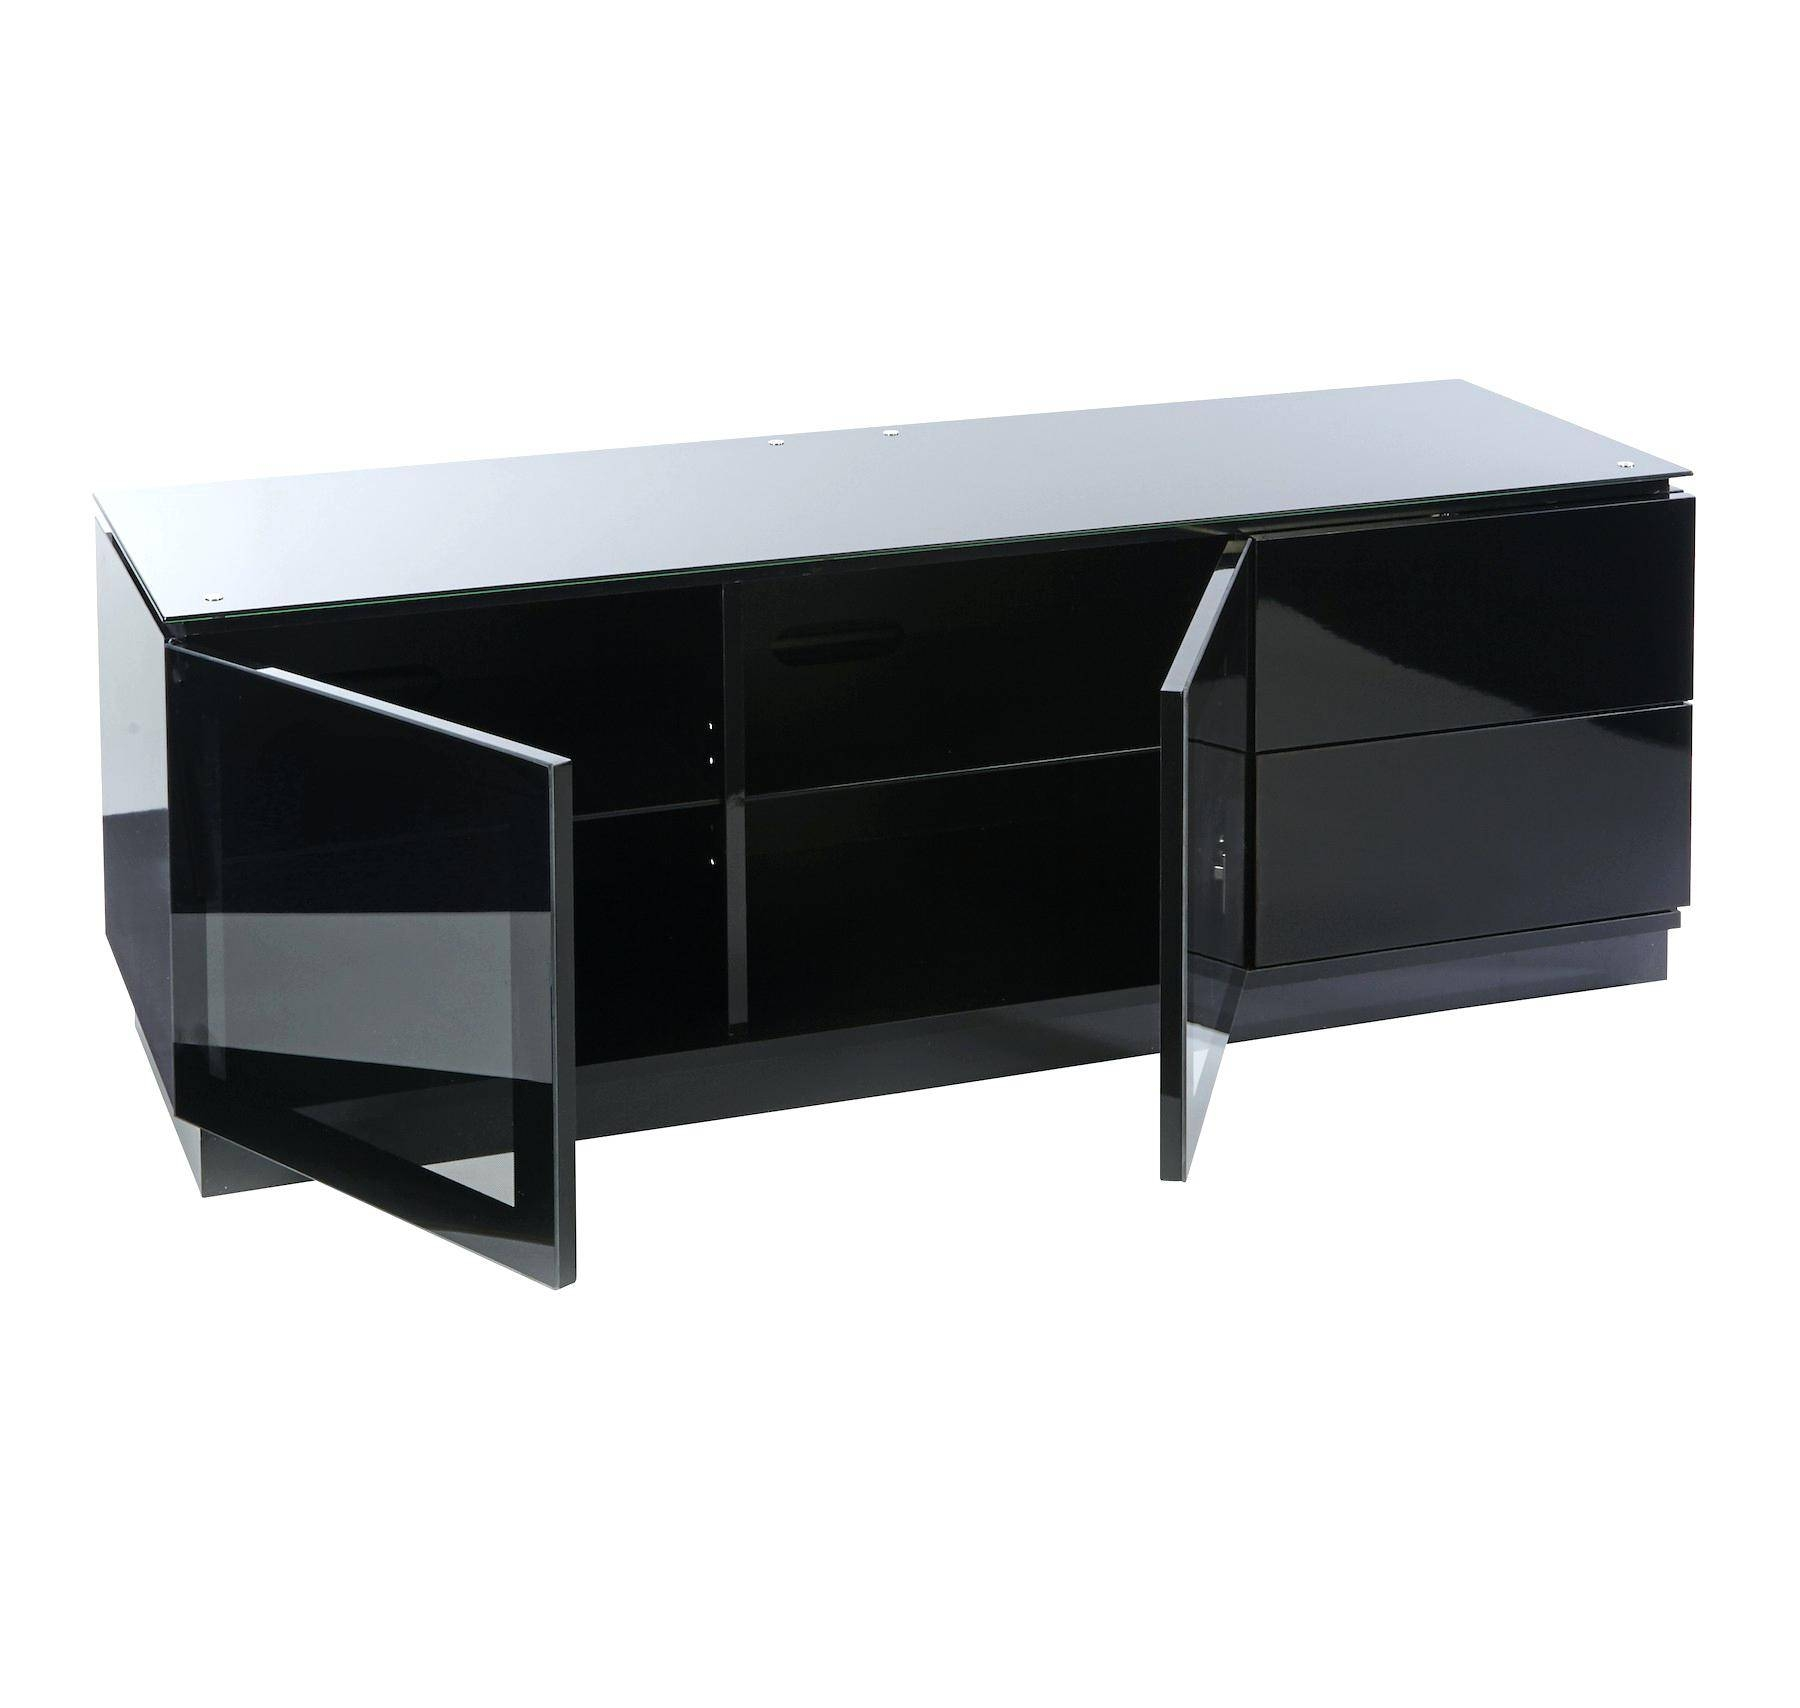 Tv Stand : Black Wood Tv Stand Black Wood Tv Stand Cool Black Wood In Black Gloss Tv Cabinet (View 15 of 15)